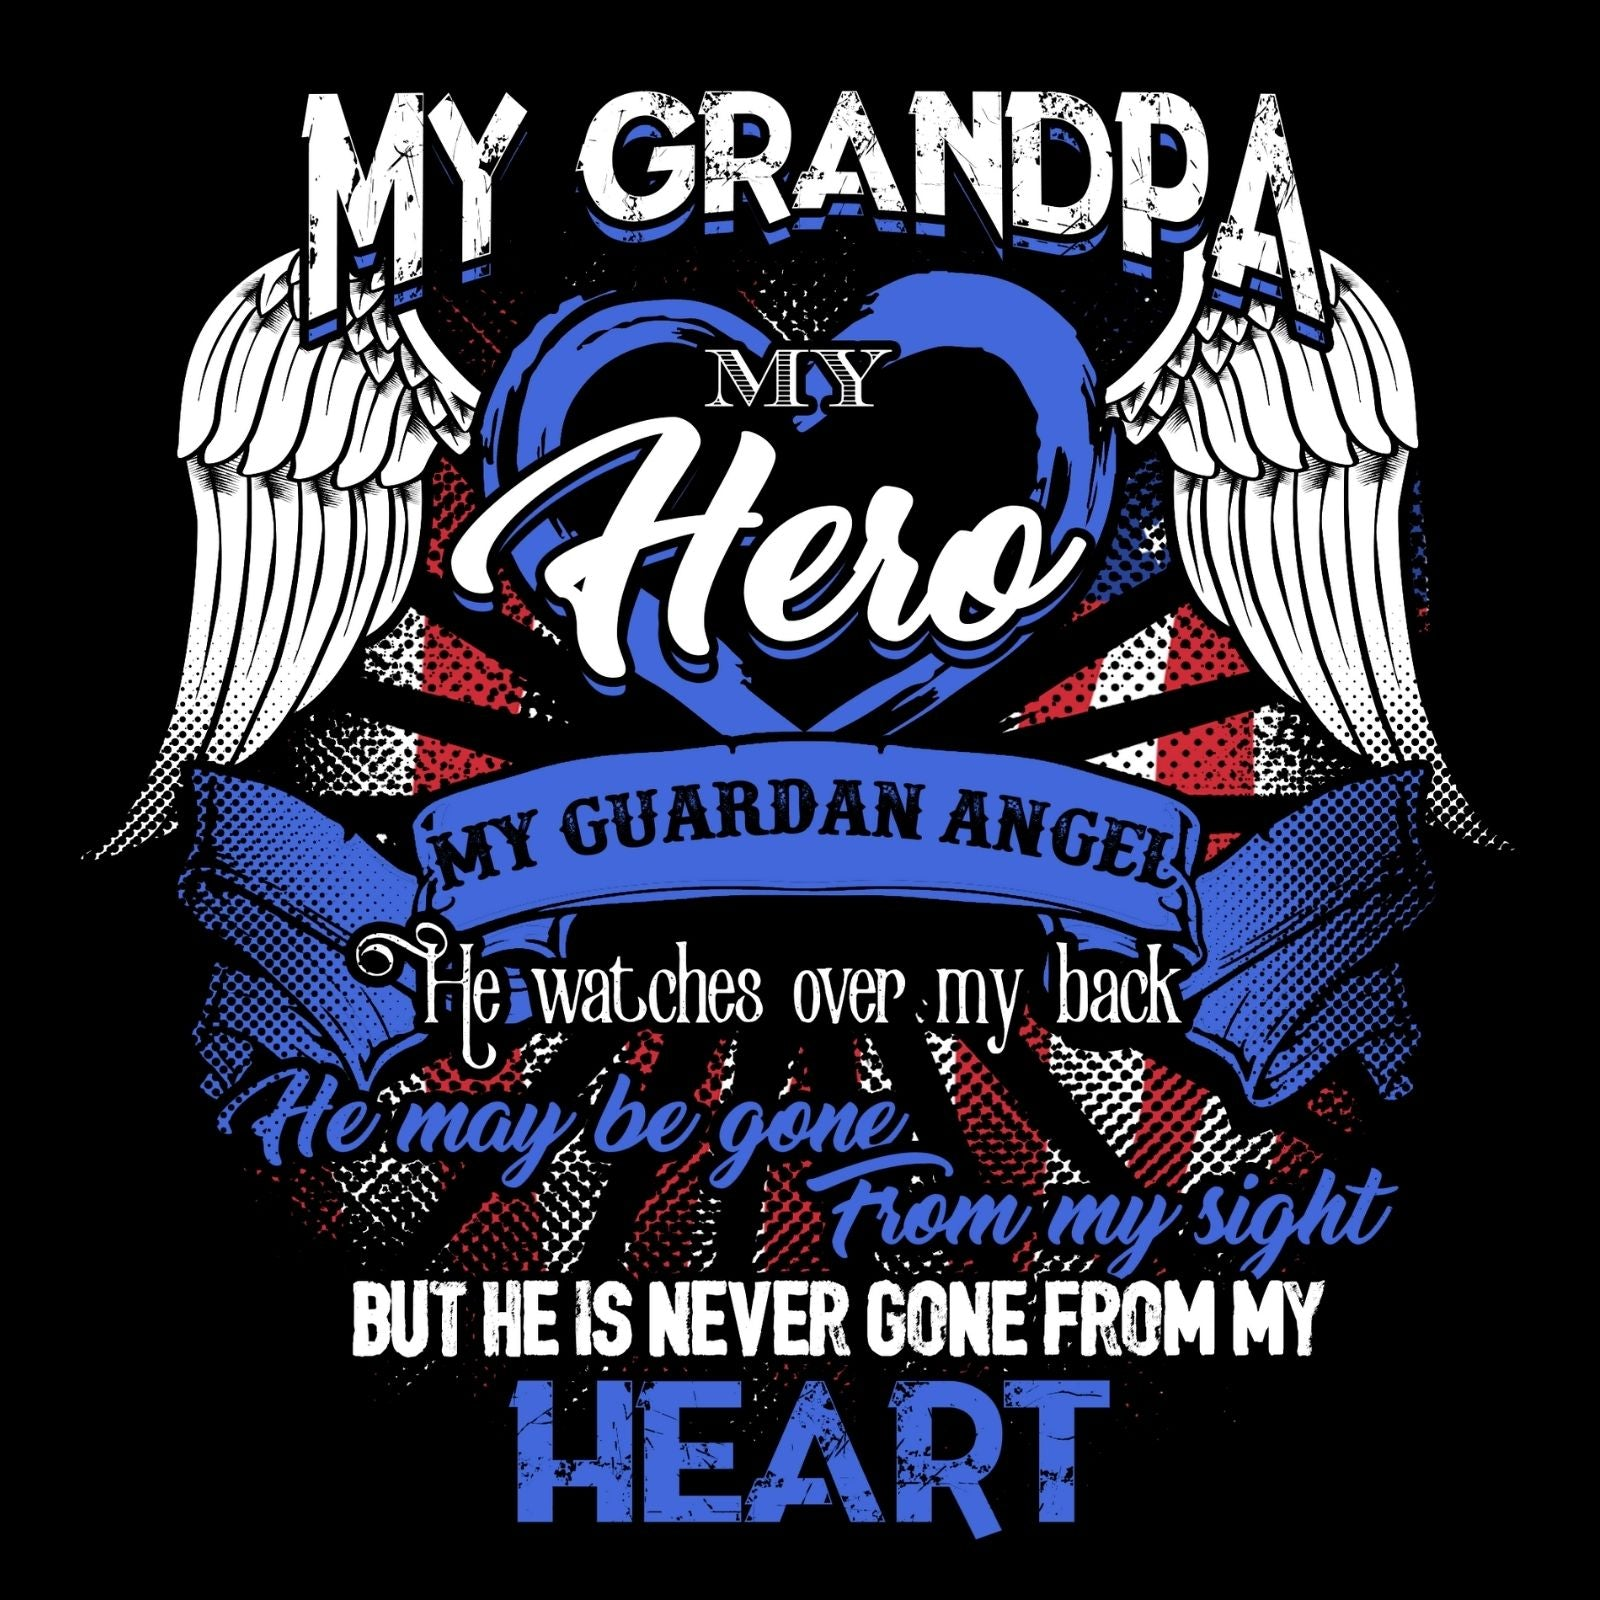 My Grandpa My Hero My Guardian Angel He Watches Over My Back He Maybe Gone From My Sight But He Is Never Gone From My Heart - Bastard Graphics